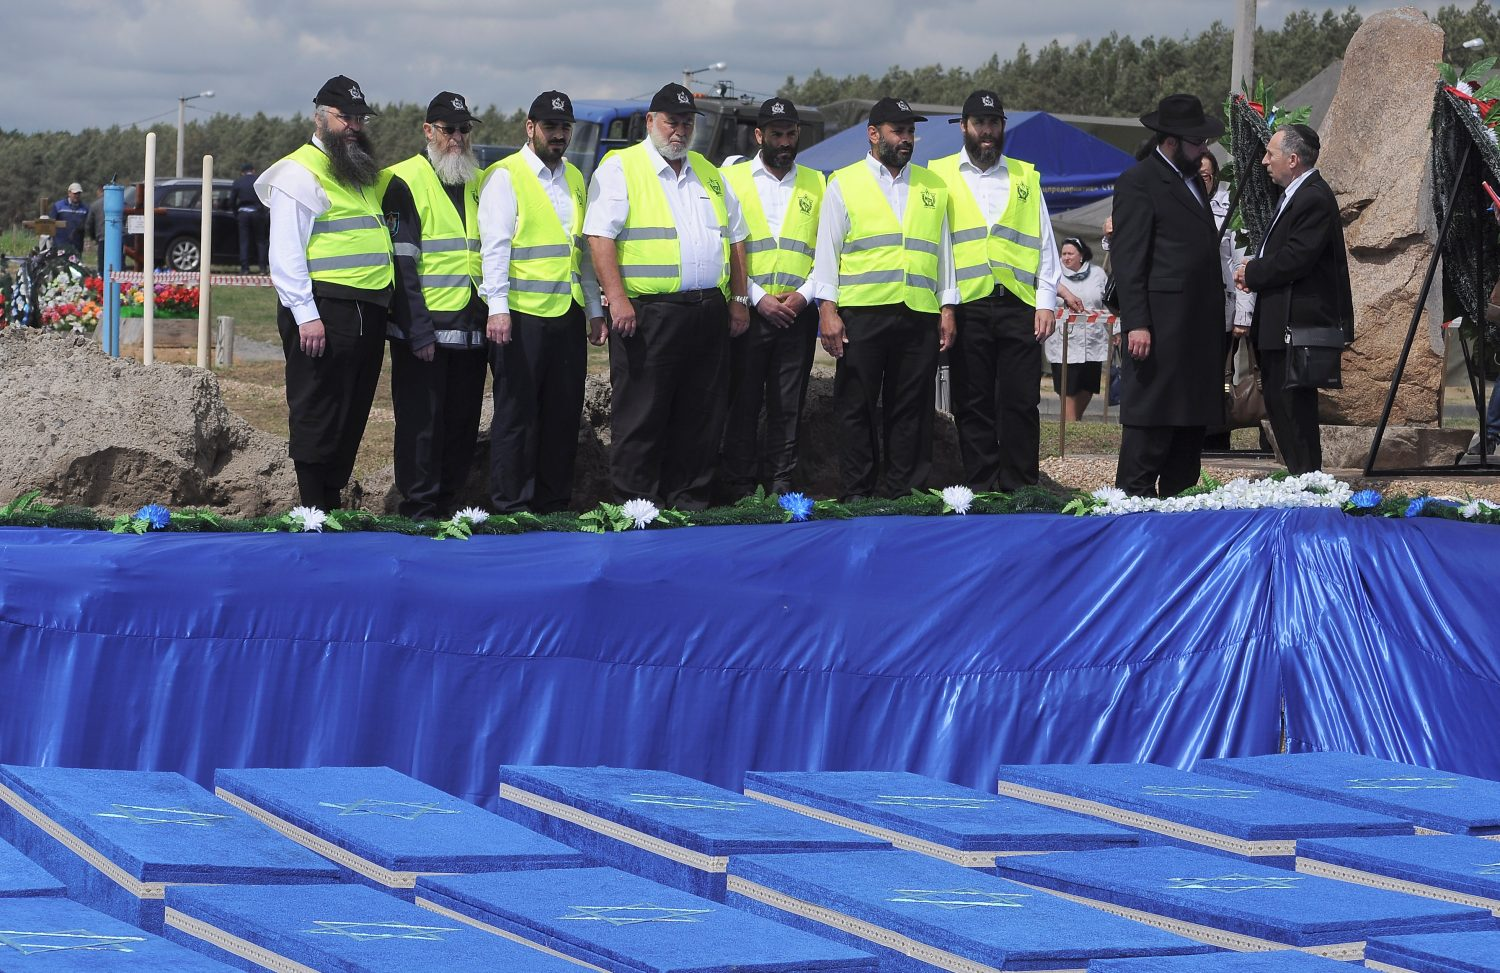 People attend a ceremony to rebury the remains of Jews killed by Nazis in a local ghetto during World War Two, which were recently found at a construction site in a residential area, in the city of Brest, Belarus May 22, 2019. REUTERS/Stringer